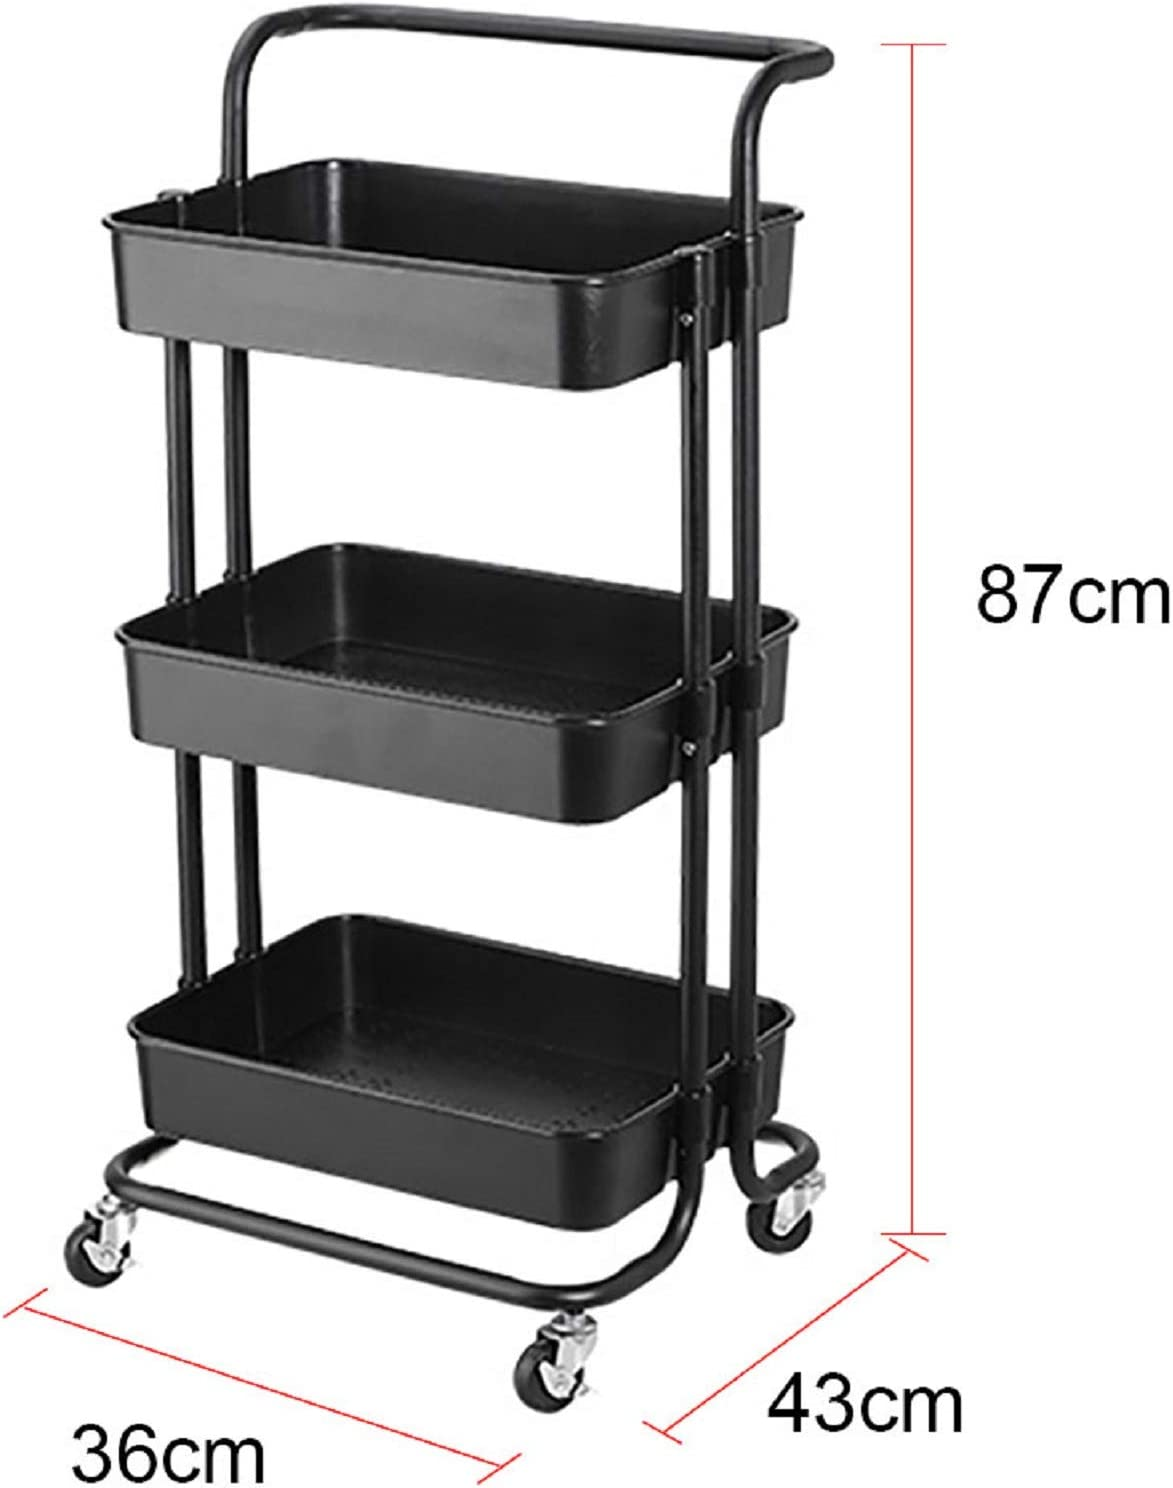 N//Y 3-Tier Rolling Cart Metal Utility Cart Rolling Trolley Organizer Cart With Wheels For Bathroom Kitchen Office Library(Black)